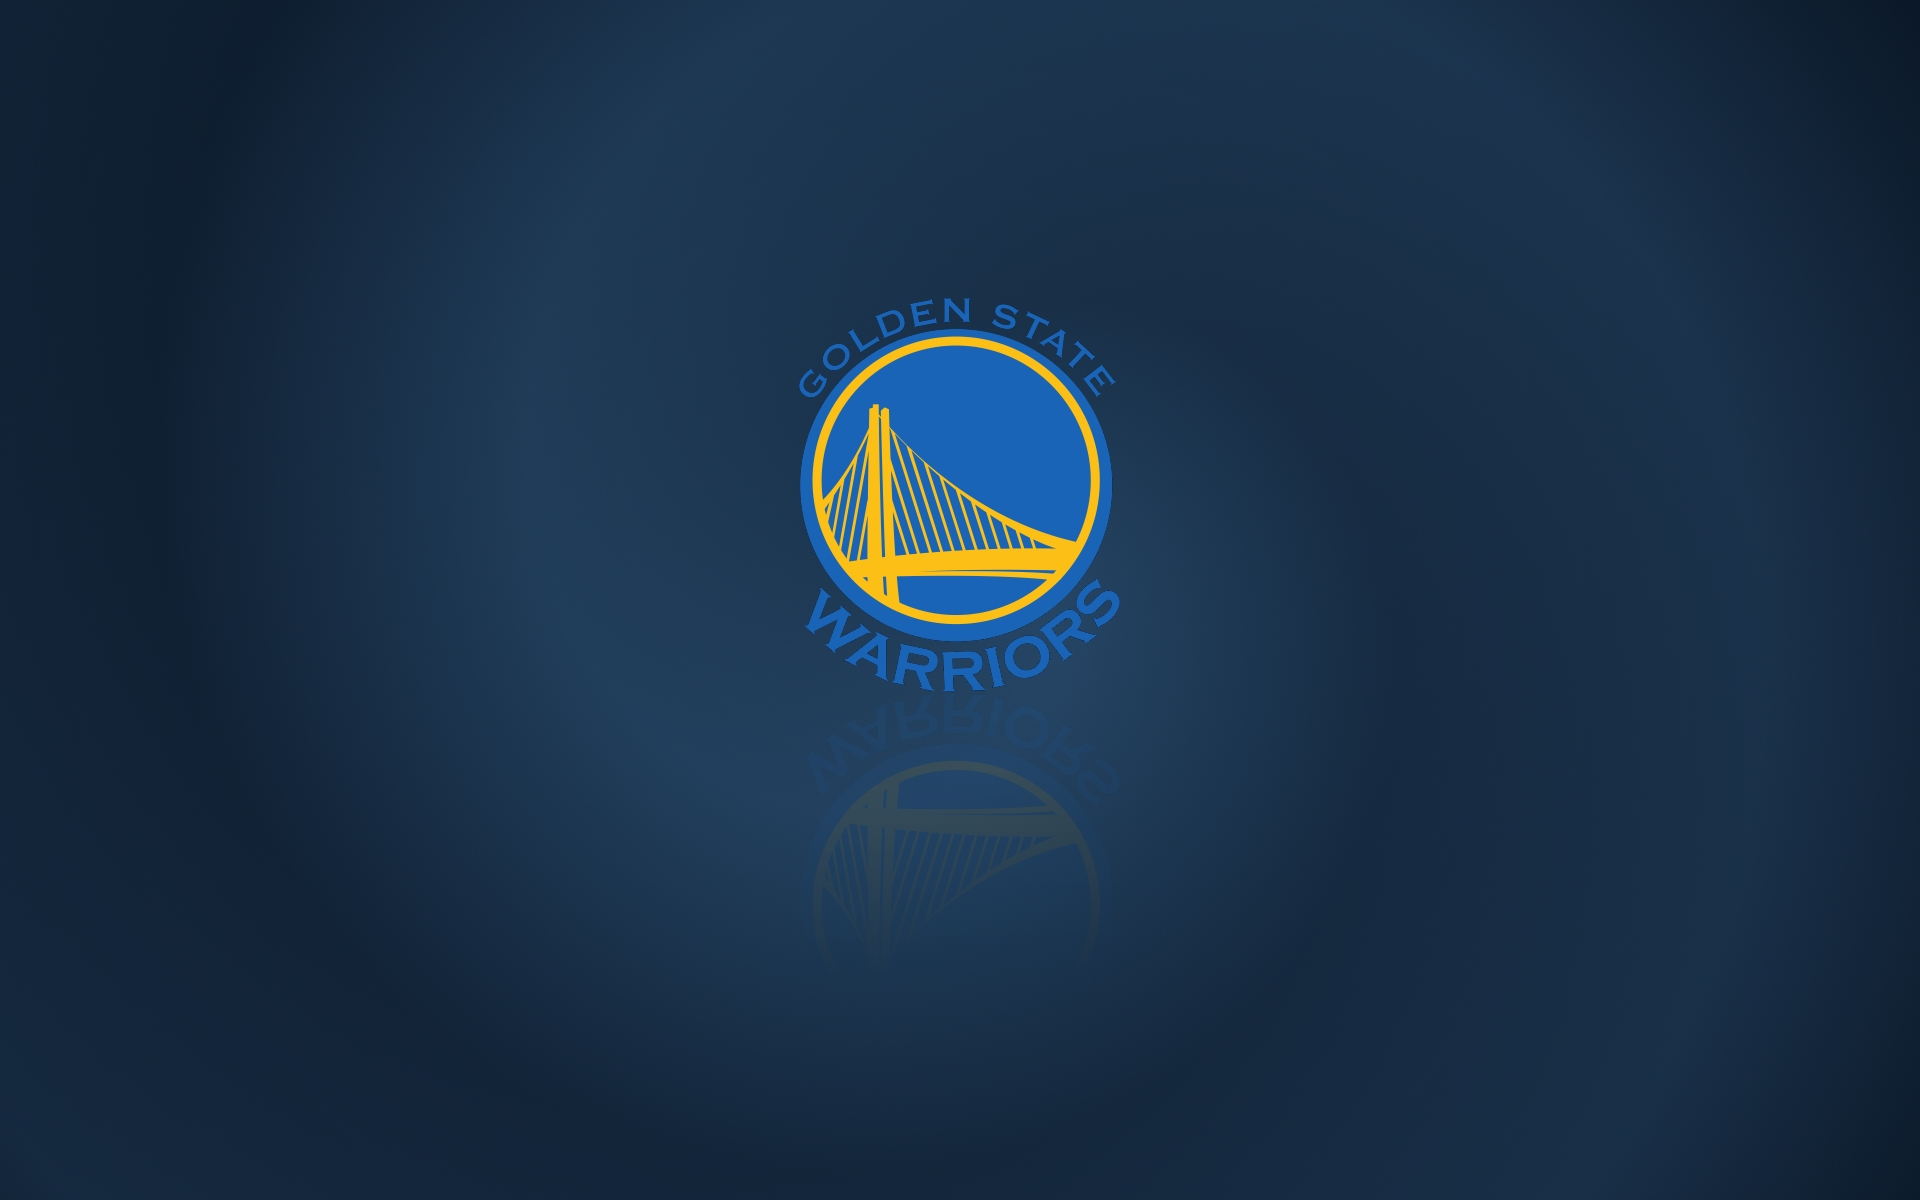 Golden State Warriors HD Wallpaper | Background Image | 1920x1200 | ID:982739 - Wallpaper Abyss